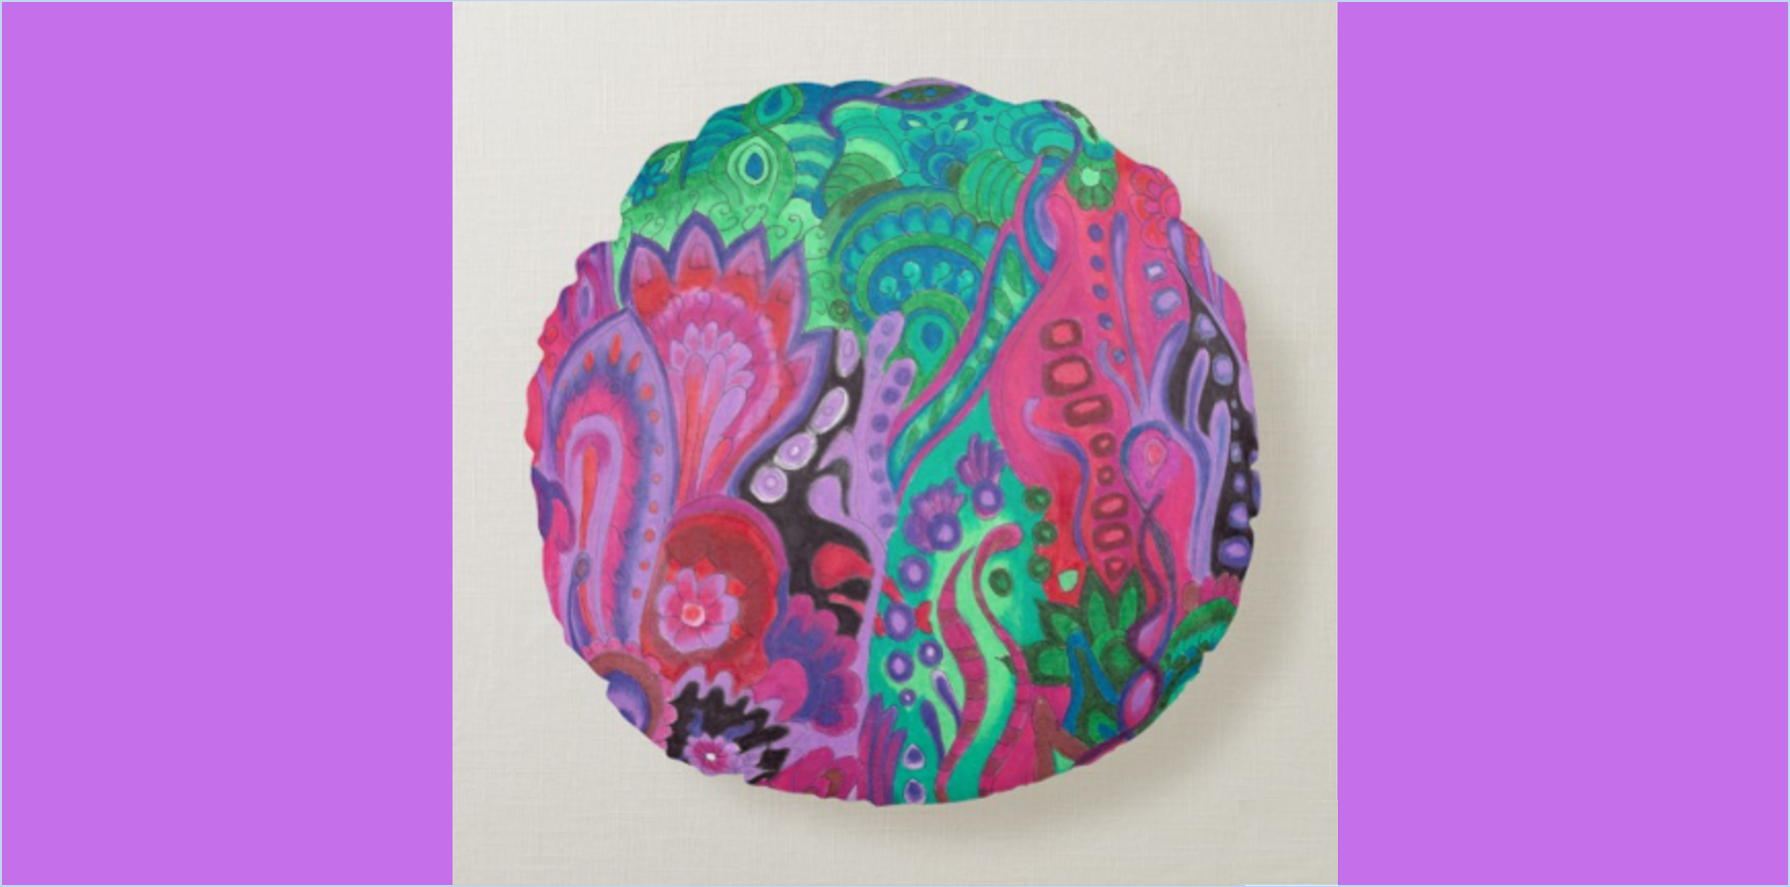 Meditation cushion green violet round pillow